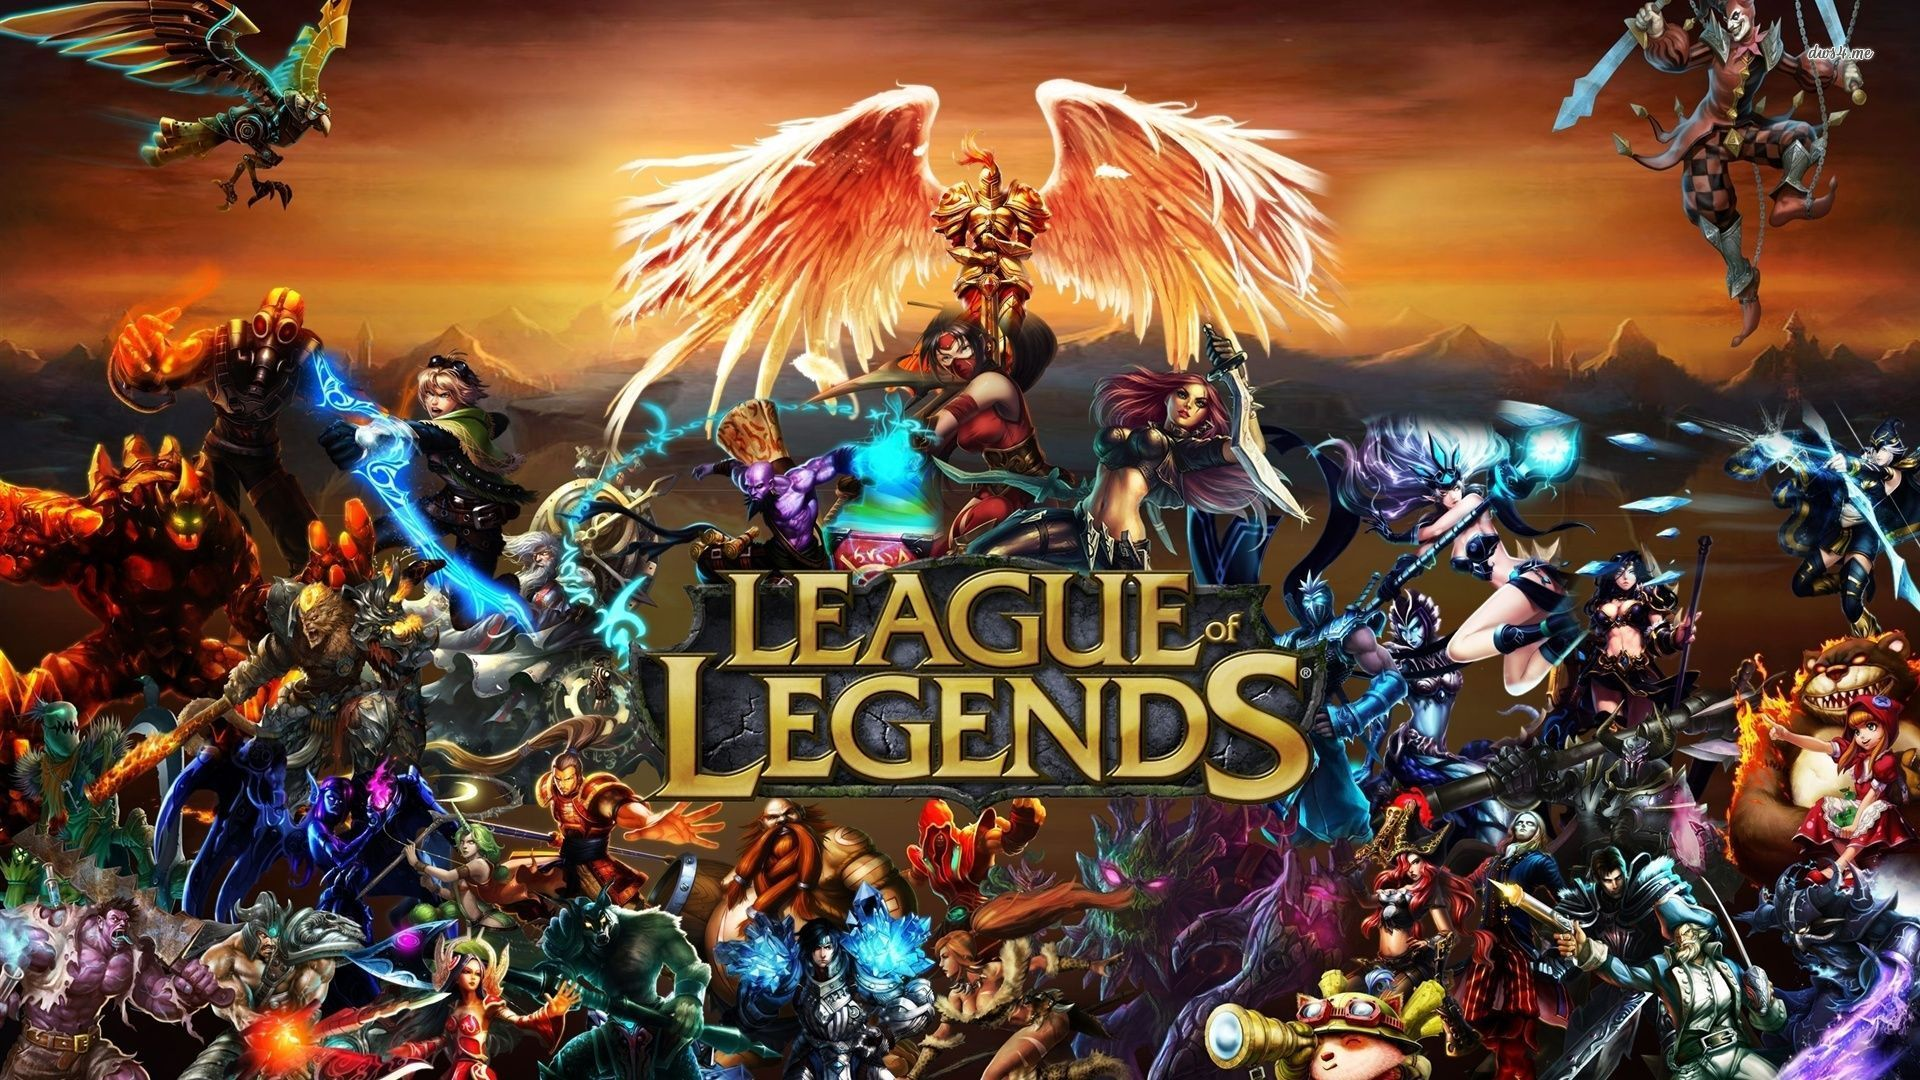 league of legends wallpaper 1920 1080 dota 2 and e sports geeks